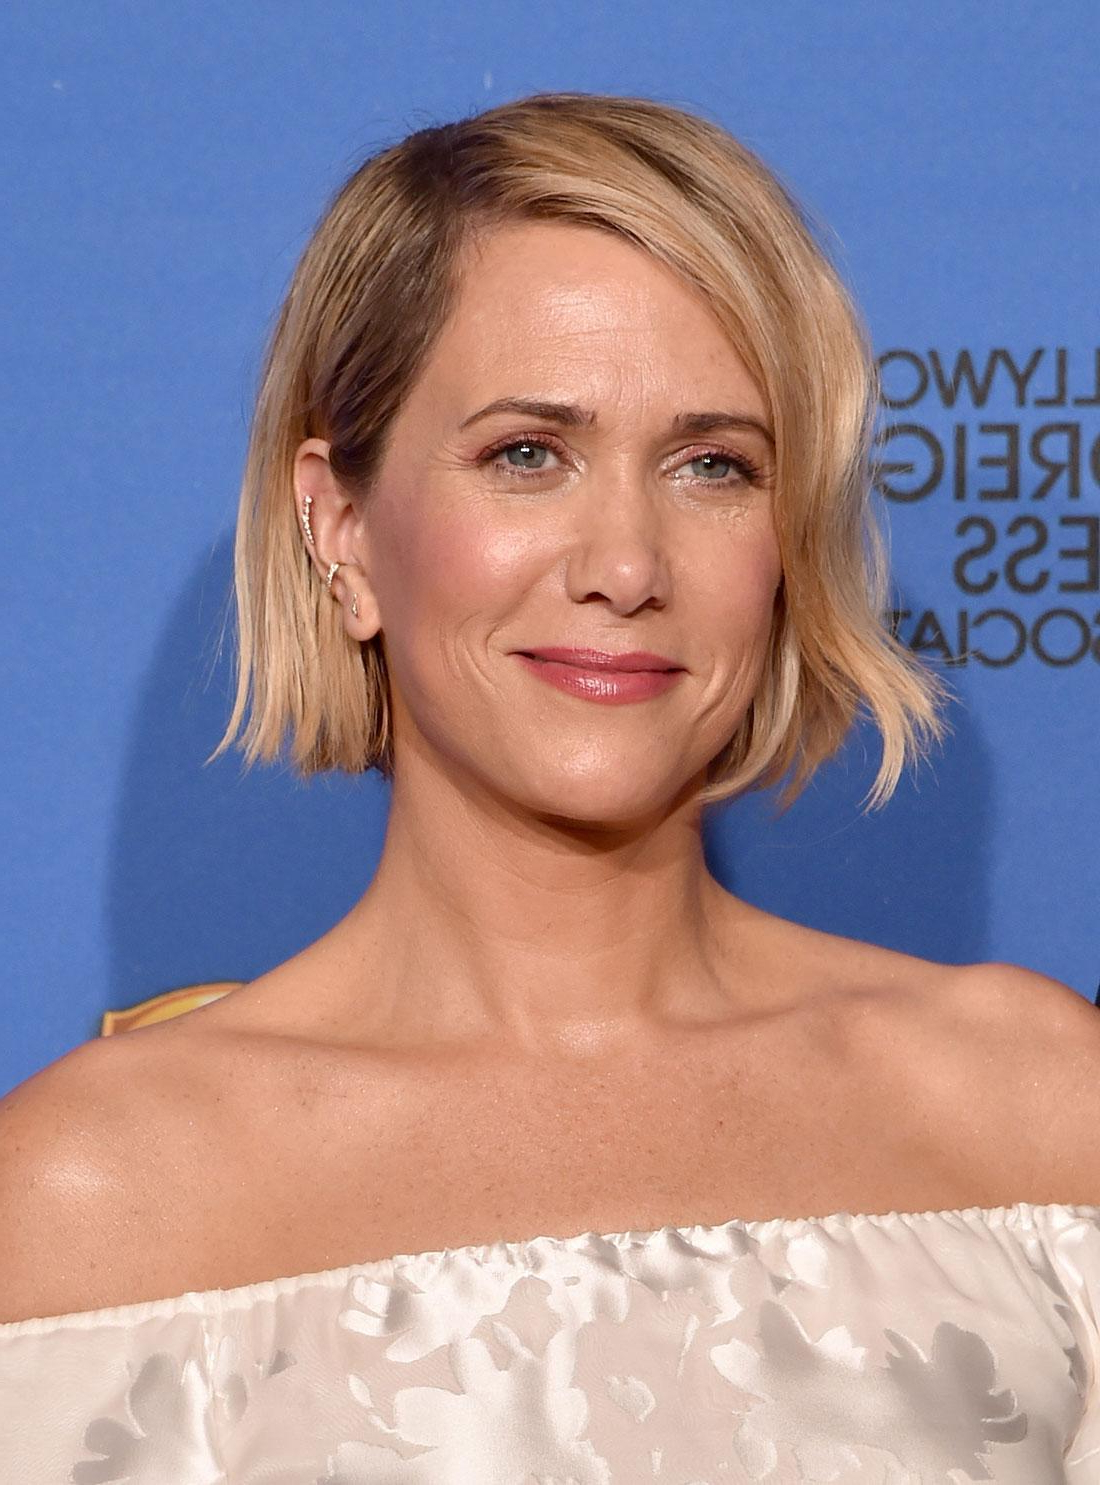 25 Best Collection Of Short Hairstyles For Petite Faces